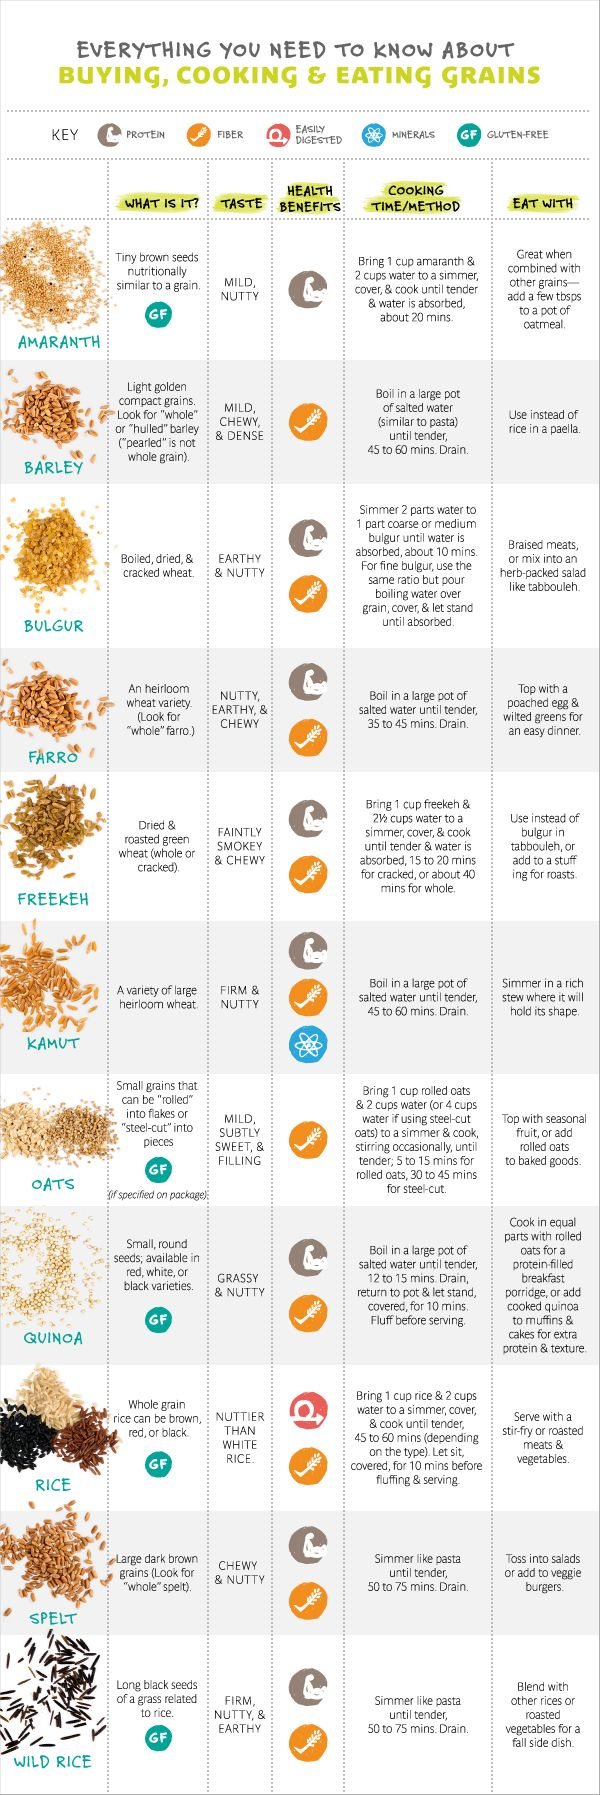 Whole grains—which contain all the parts of a grain you can eat (the bran, germ, and endosperm)—come with some serious health benefits.